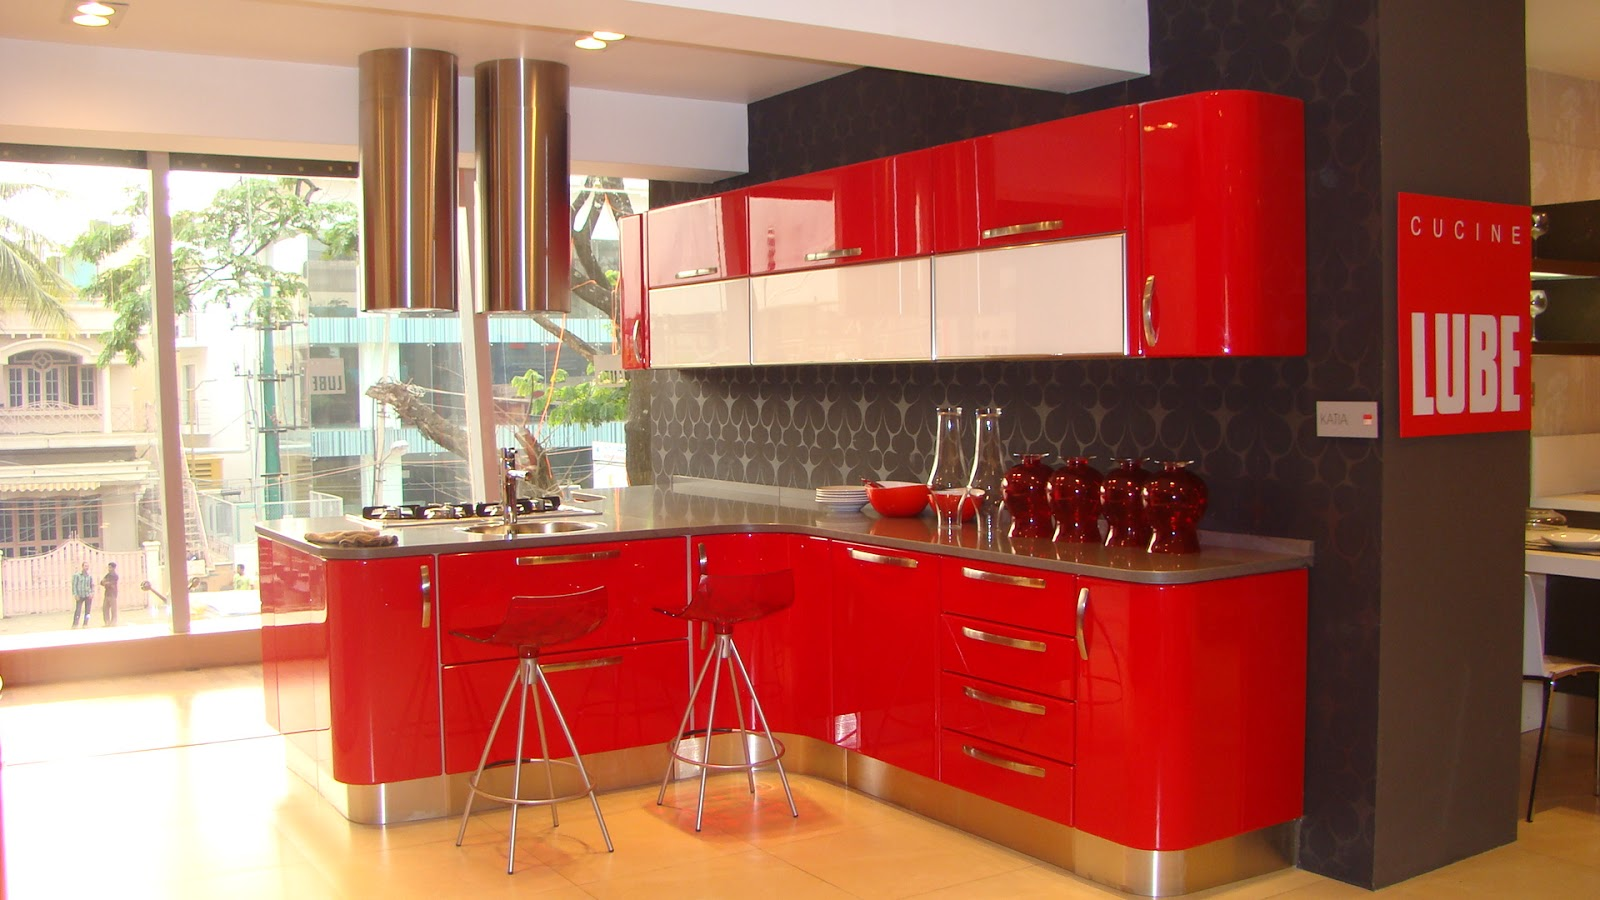 Modular Kitchens in Bangalore: Italian Modular Kitchens from ...